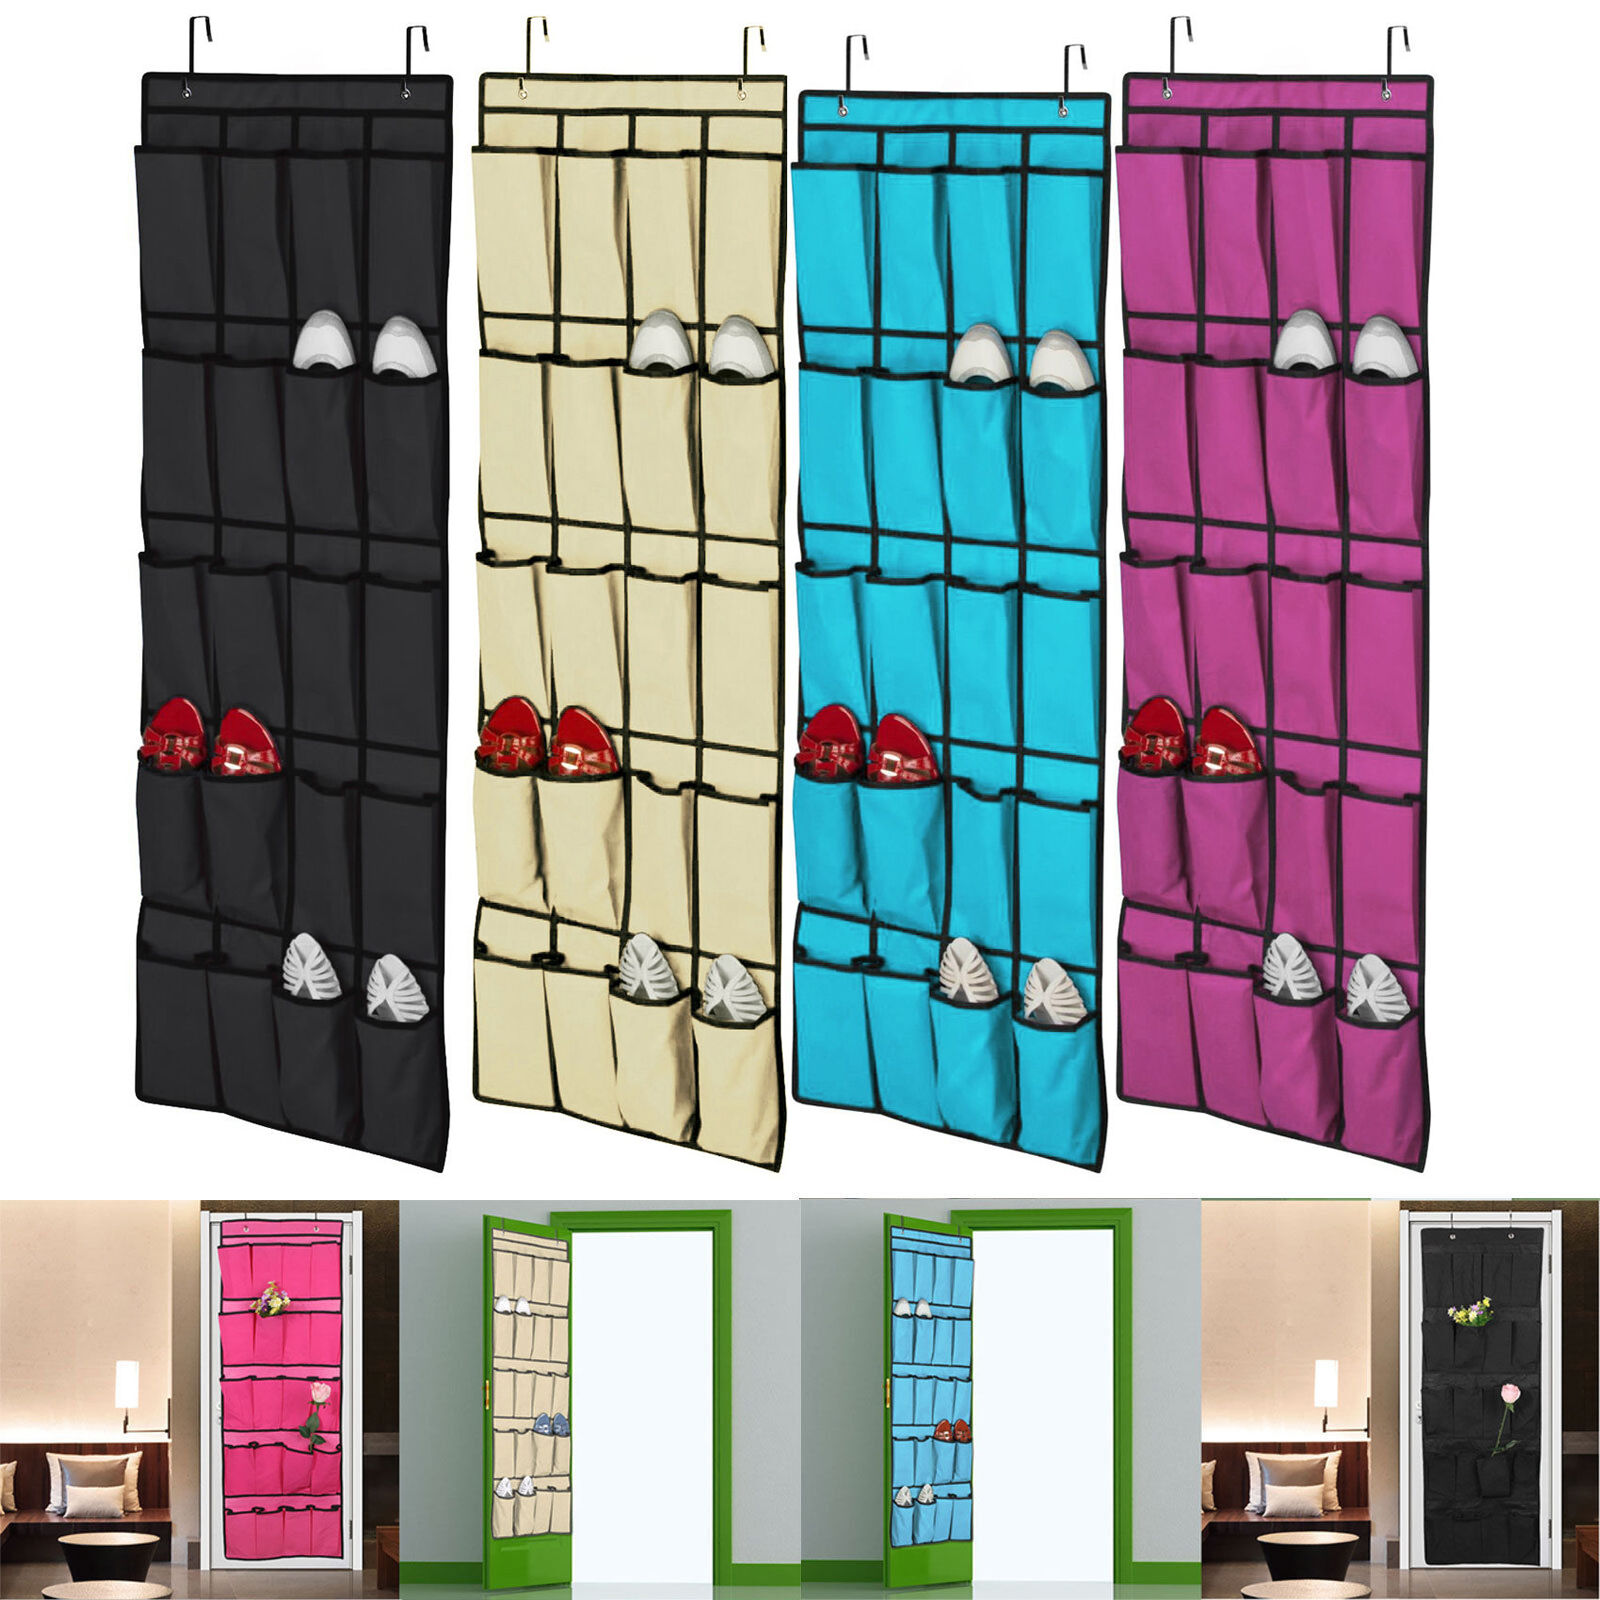 20 Pocket Over the Door Shoe Organizer Rack Hanging Storage